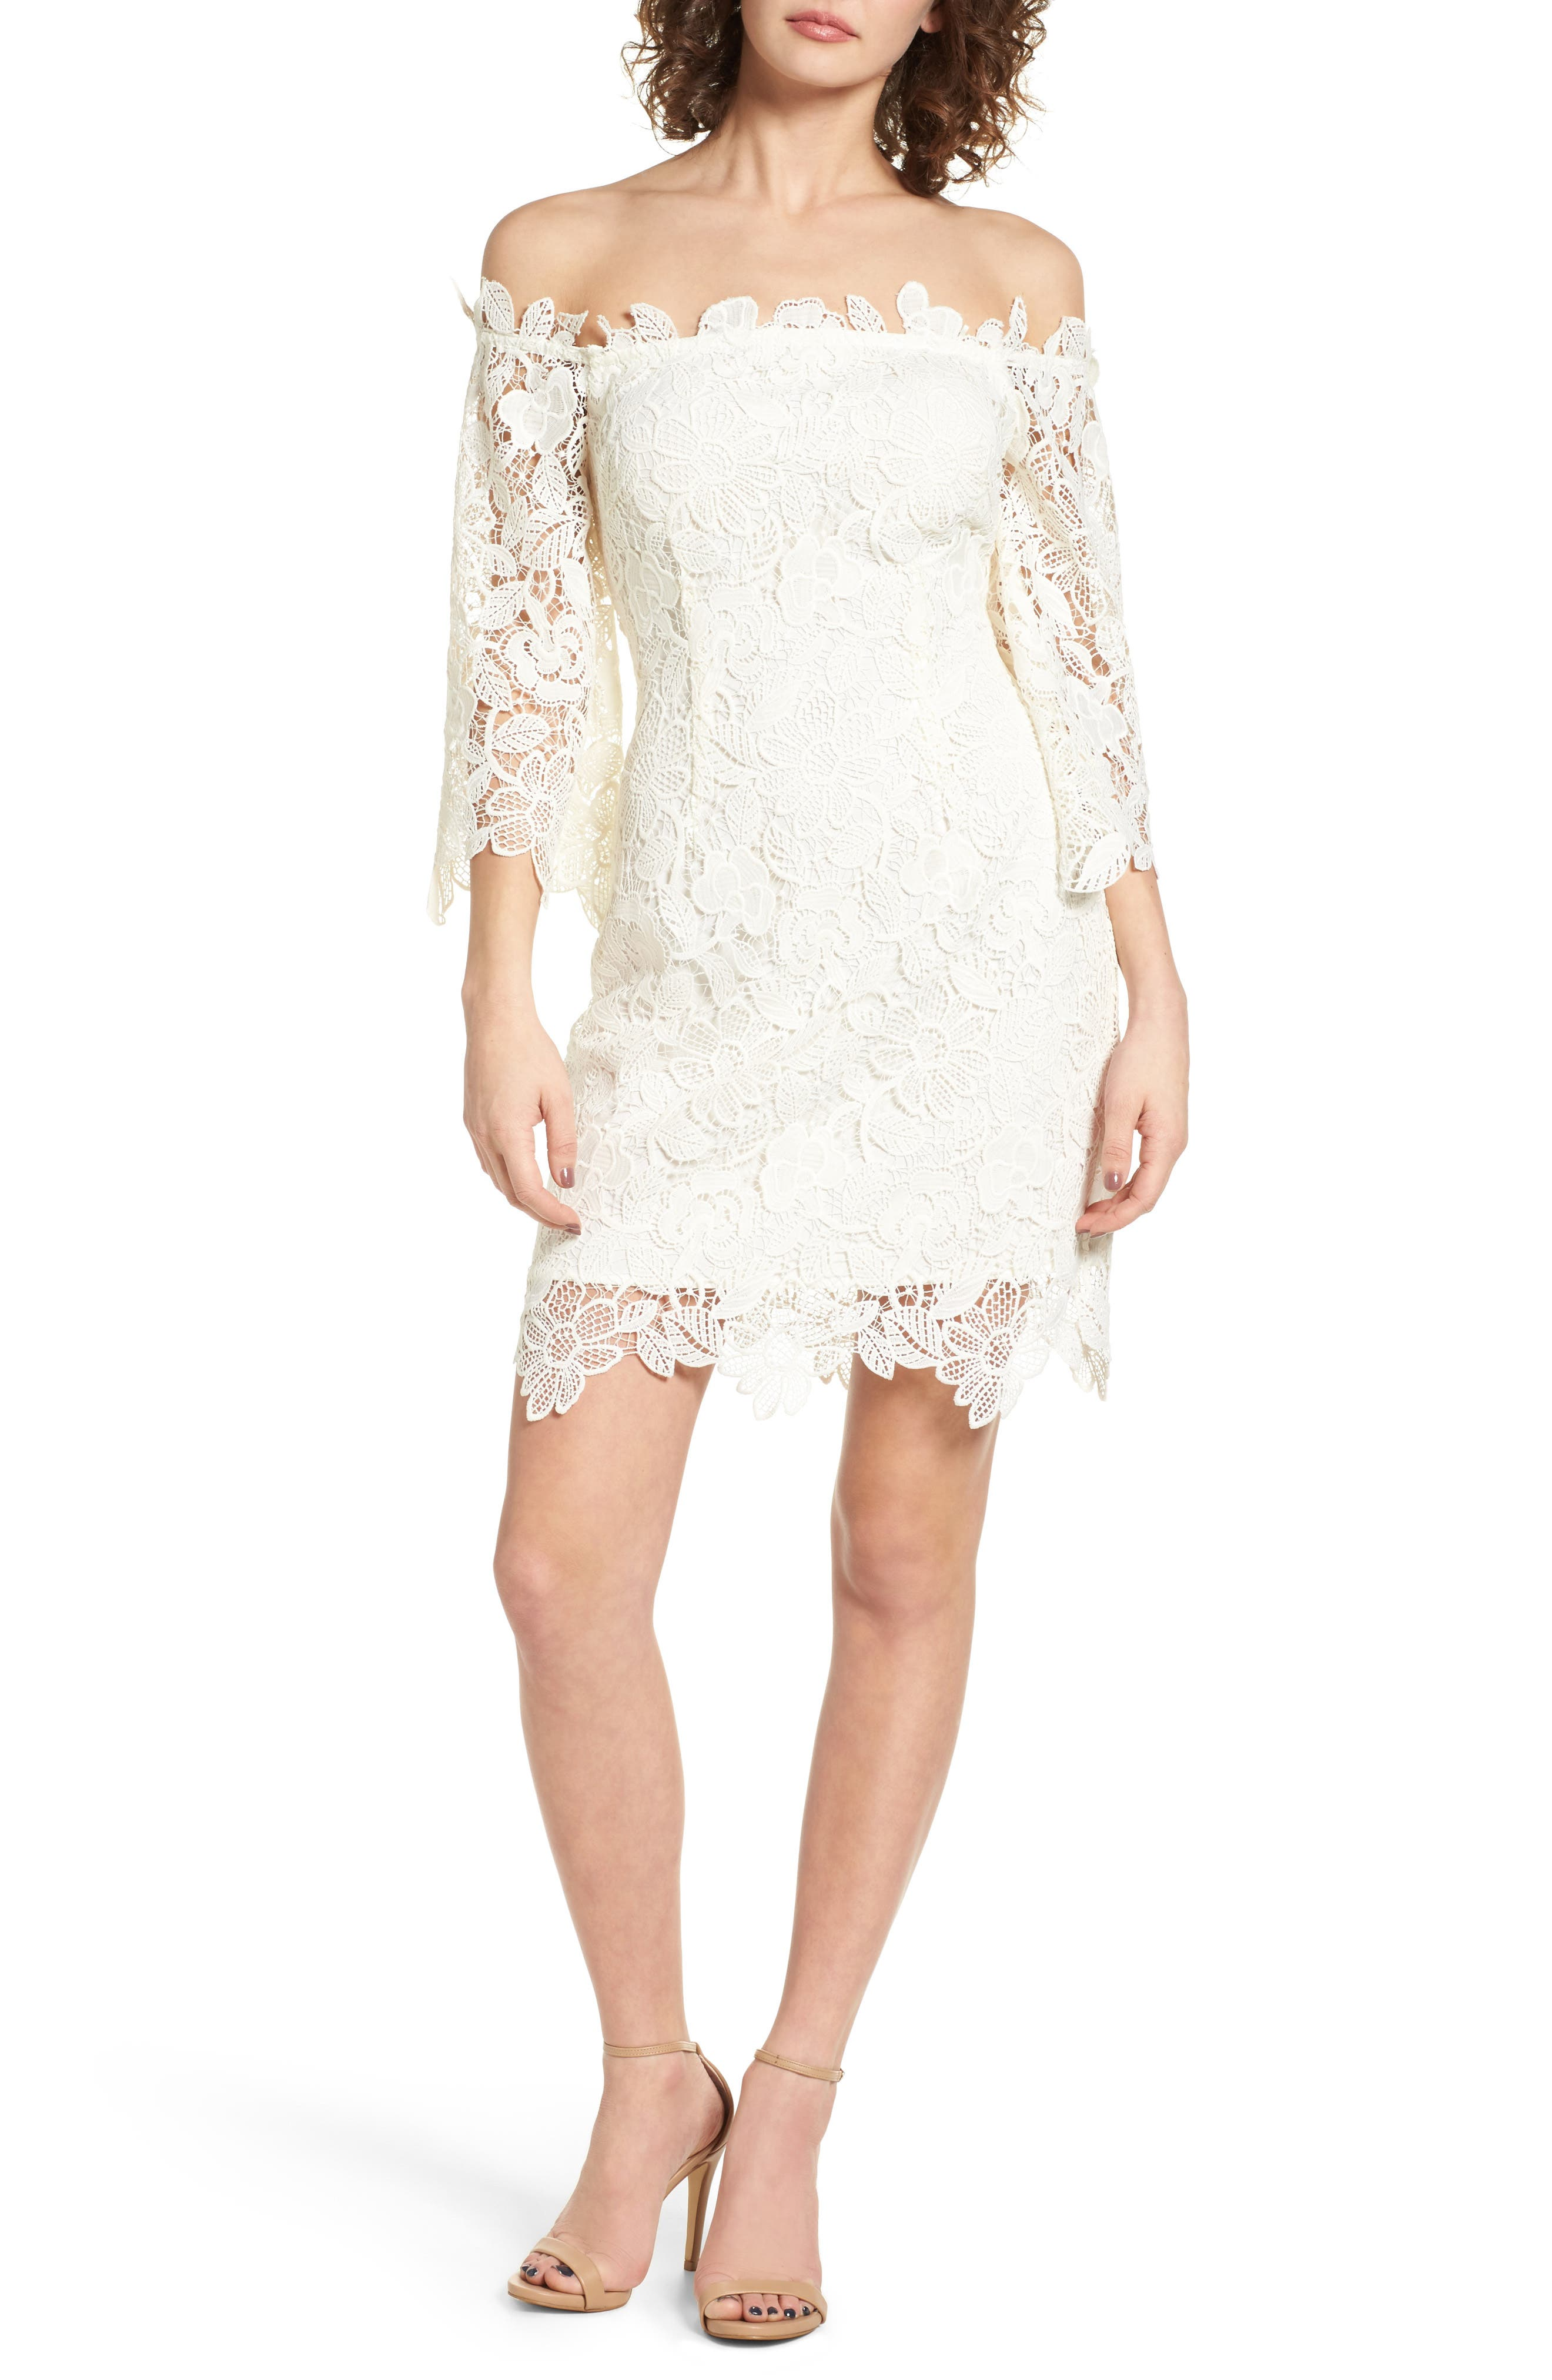 Main Image - ASTR the Label Madeline Off the Shoulder Lace Minidress